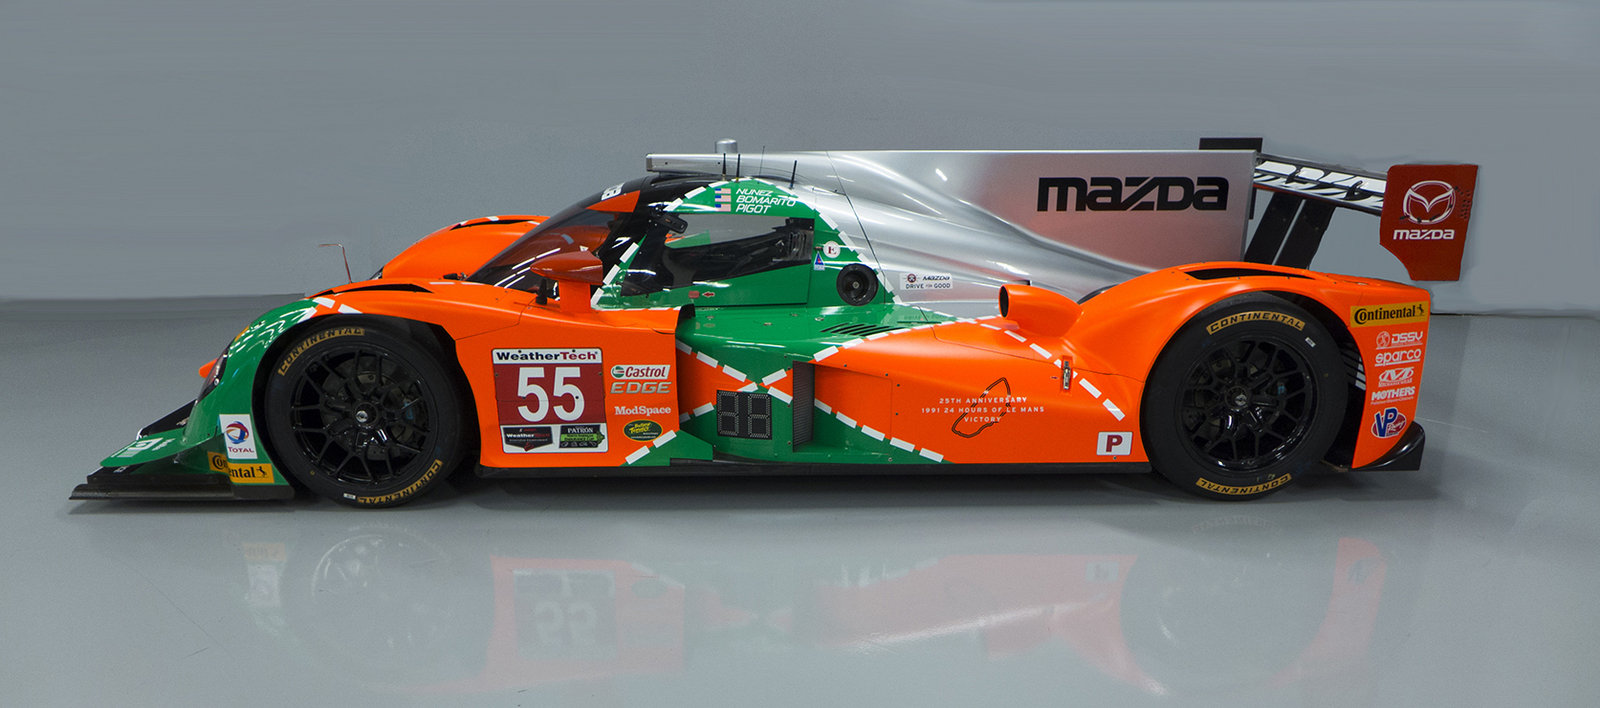 mazda pays tribute to 1991 le mans win with 787b inspired. Black Bedroom Furniture Sets. Home Design Ideas